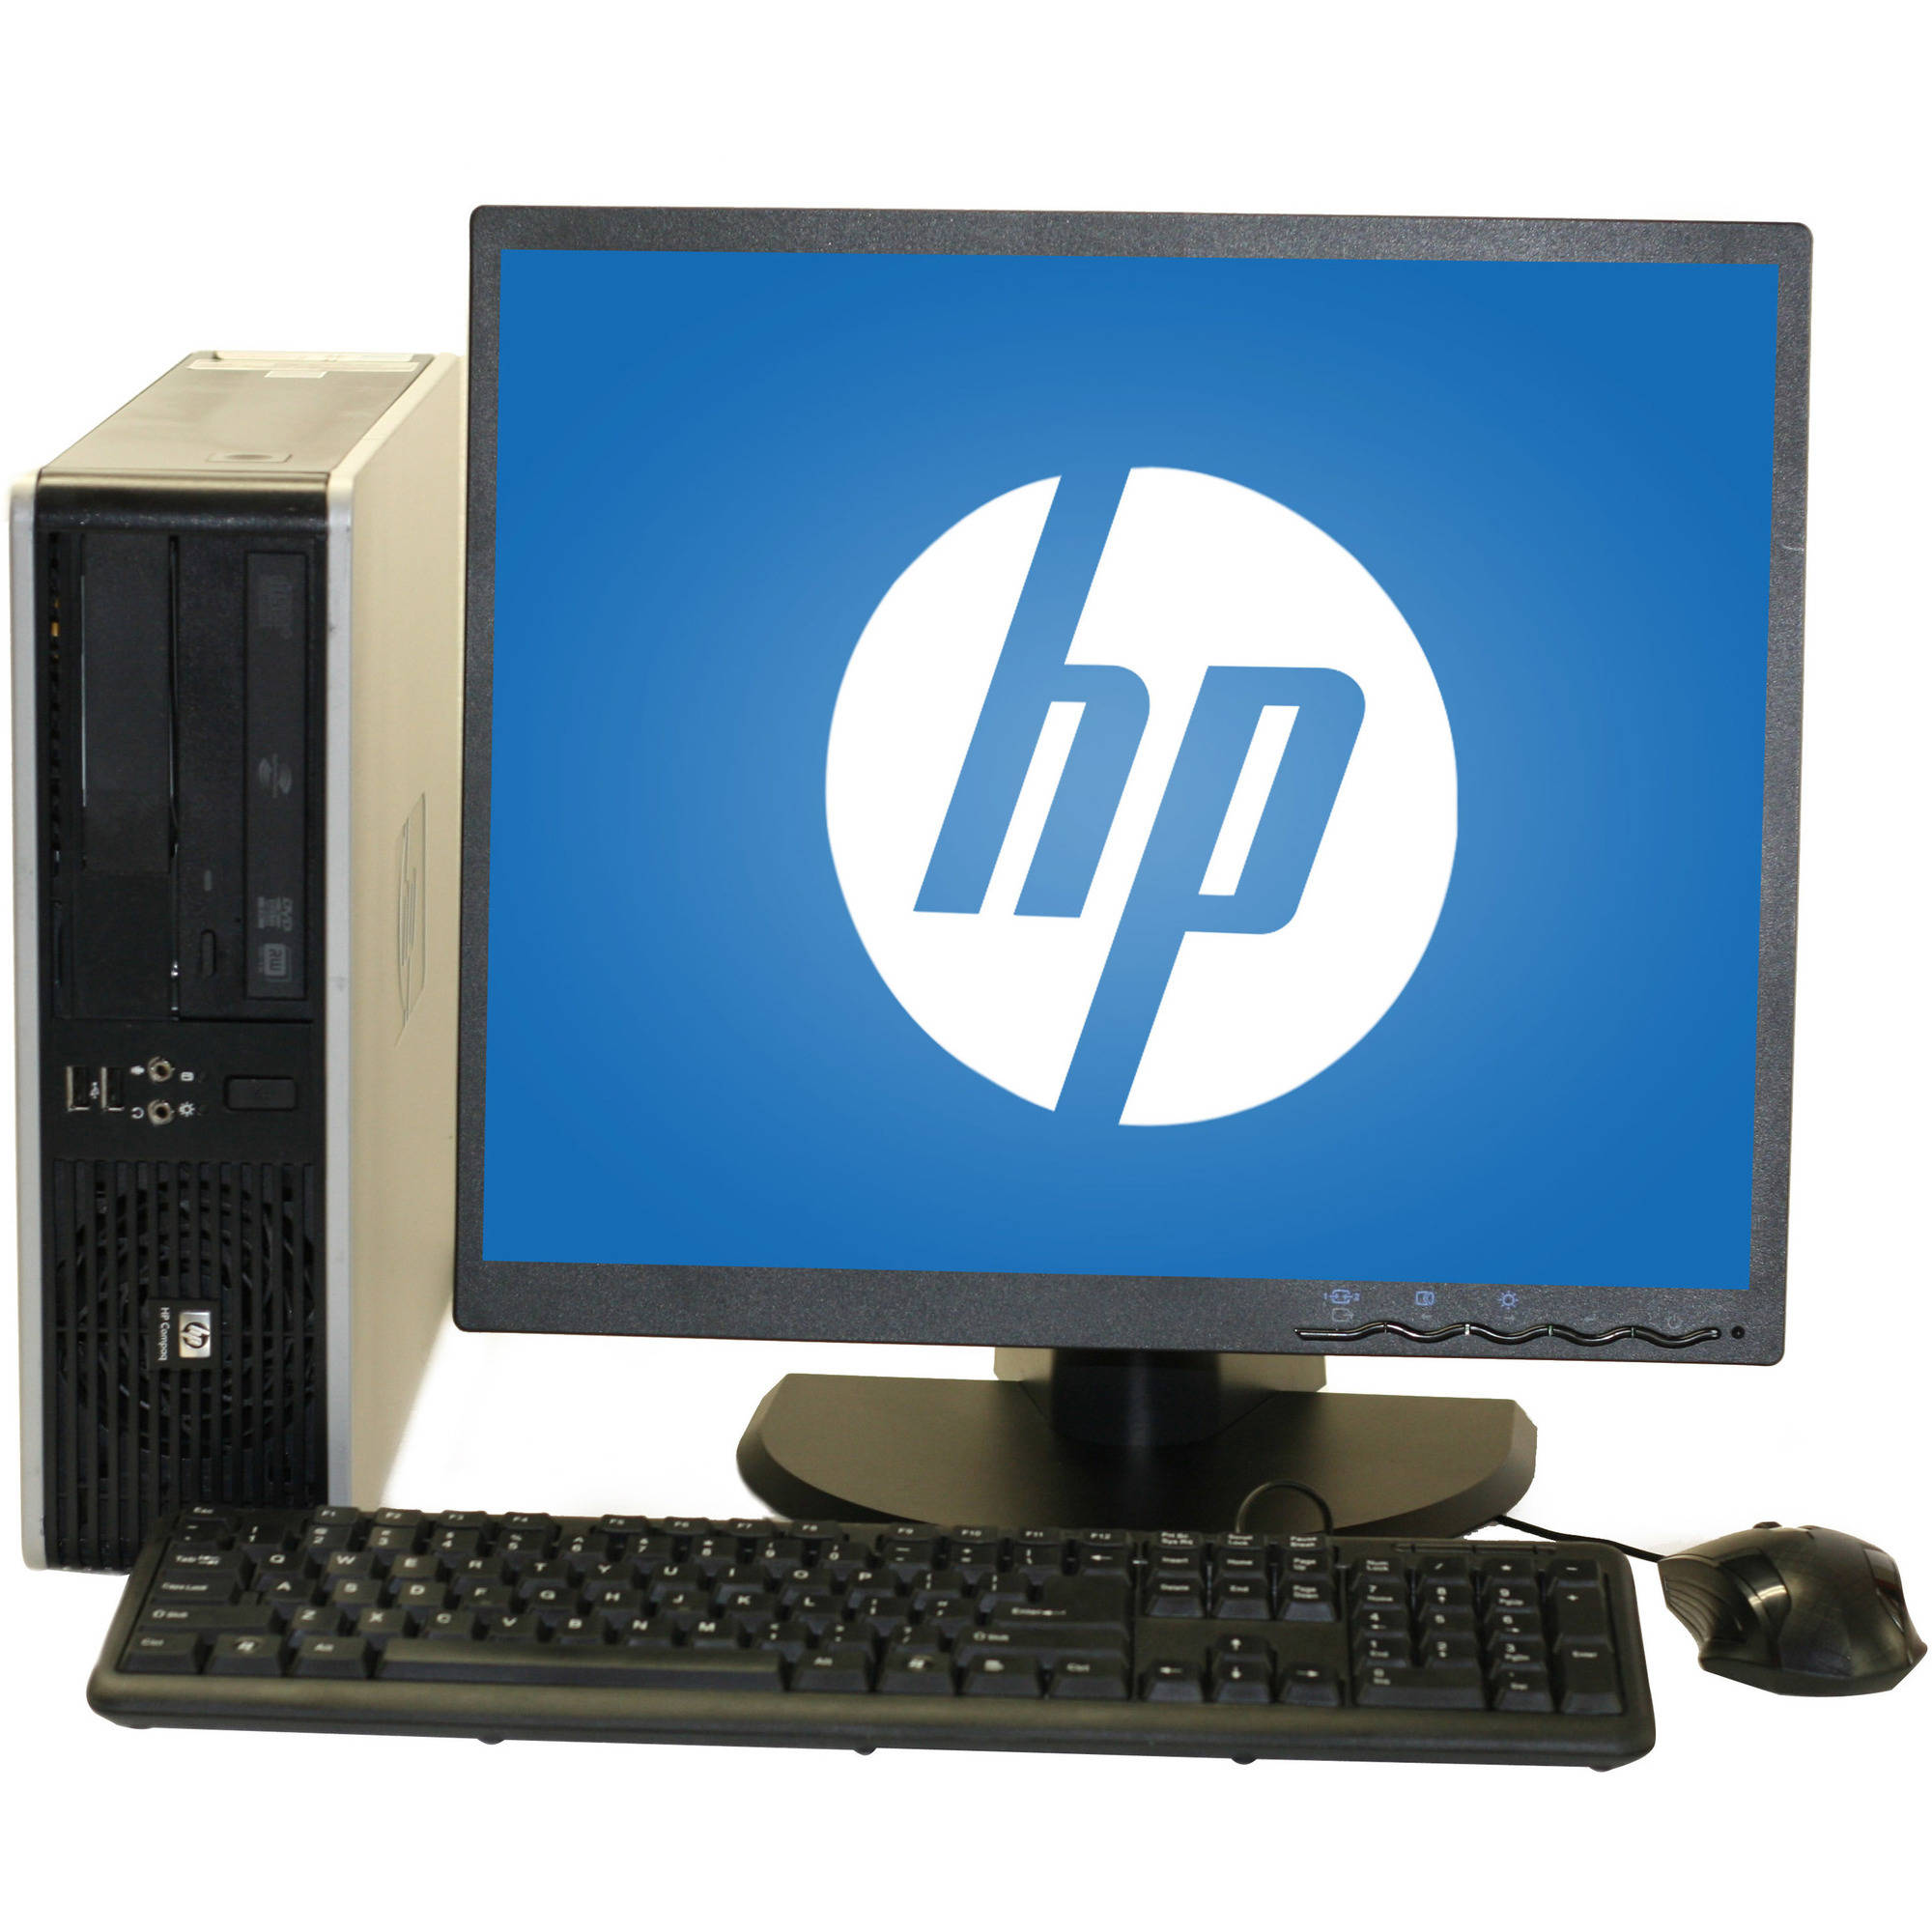 "Refurbished HP DC5800 Desktop PC with Intel Core 2 Duo Processor, 8GB Memory, 19"" Monitor, 2TB Hard Drive and Windows 10 Home"